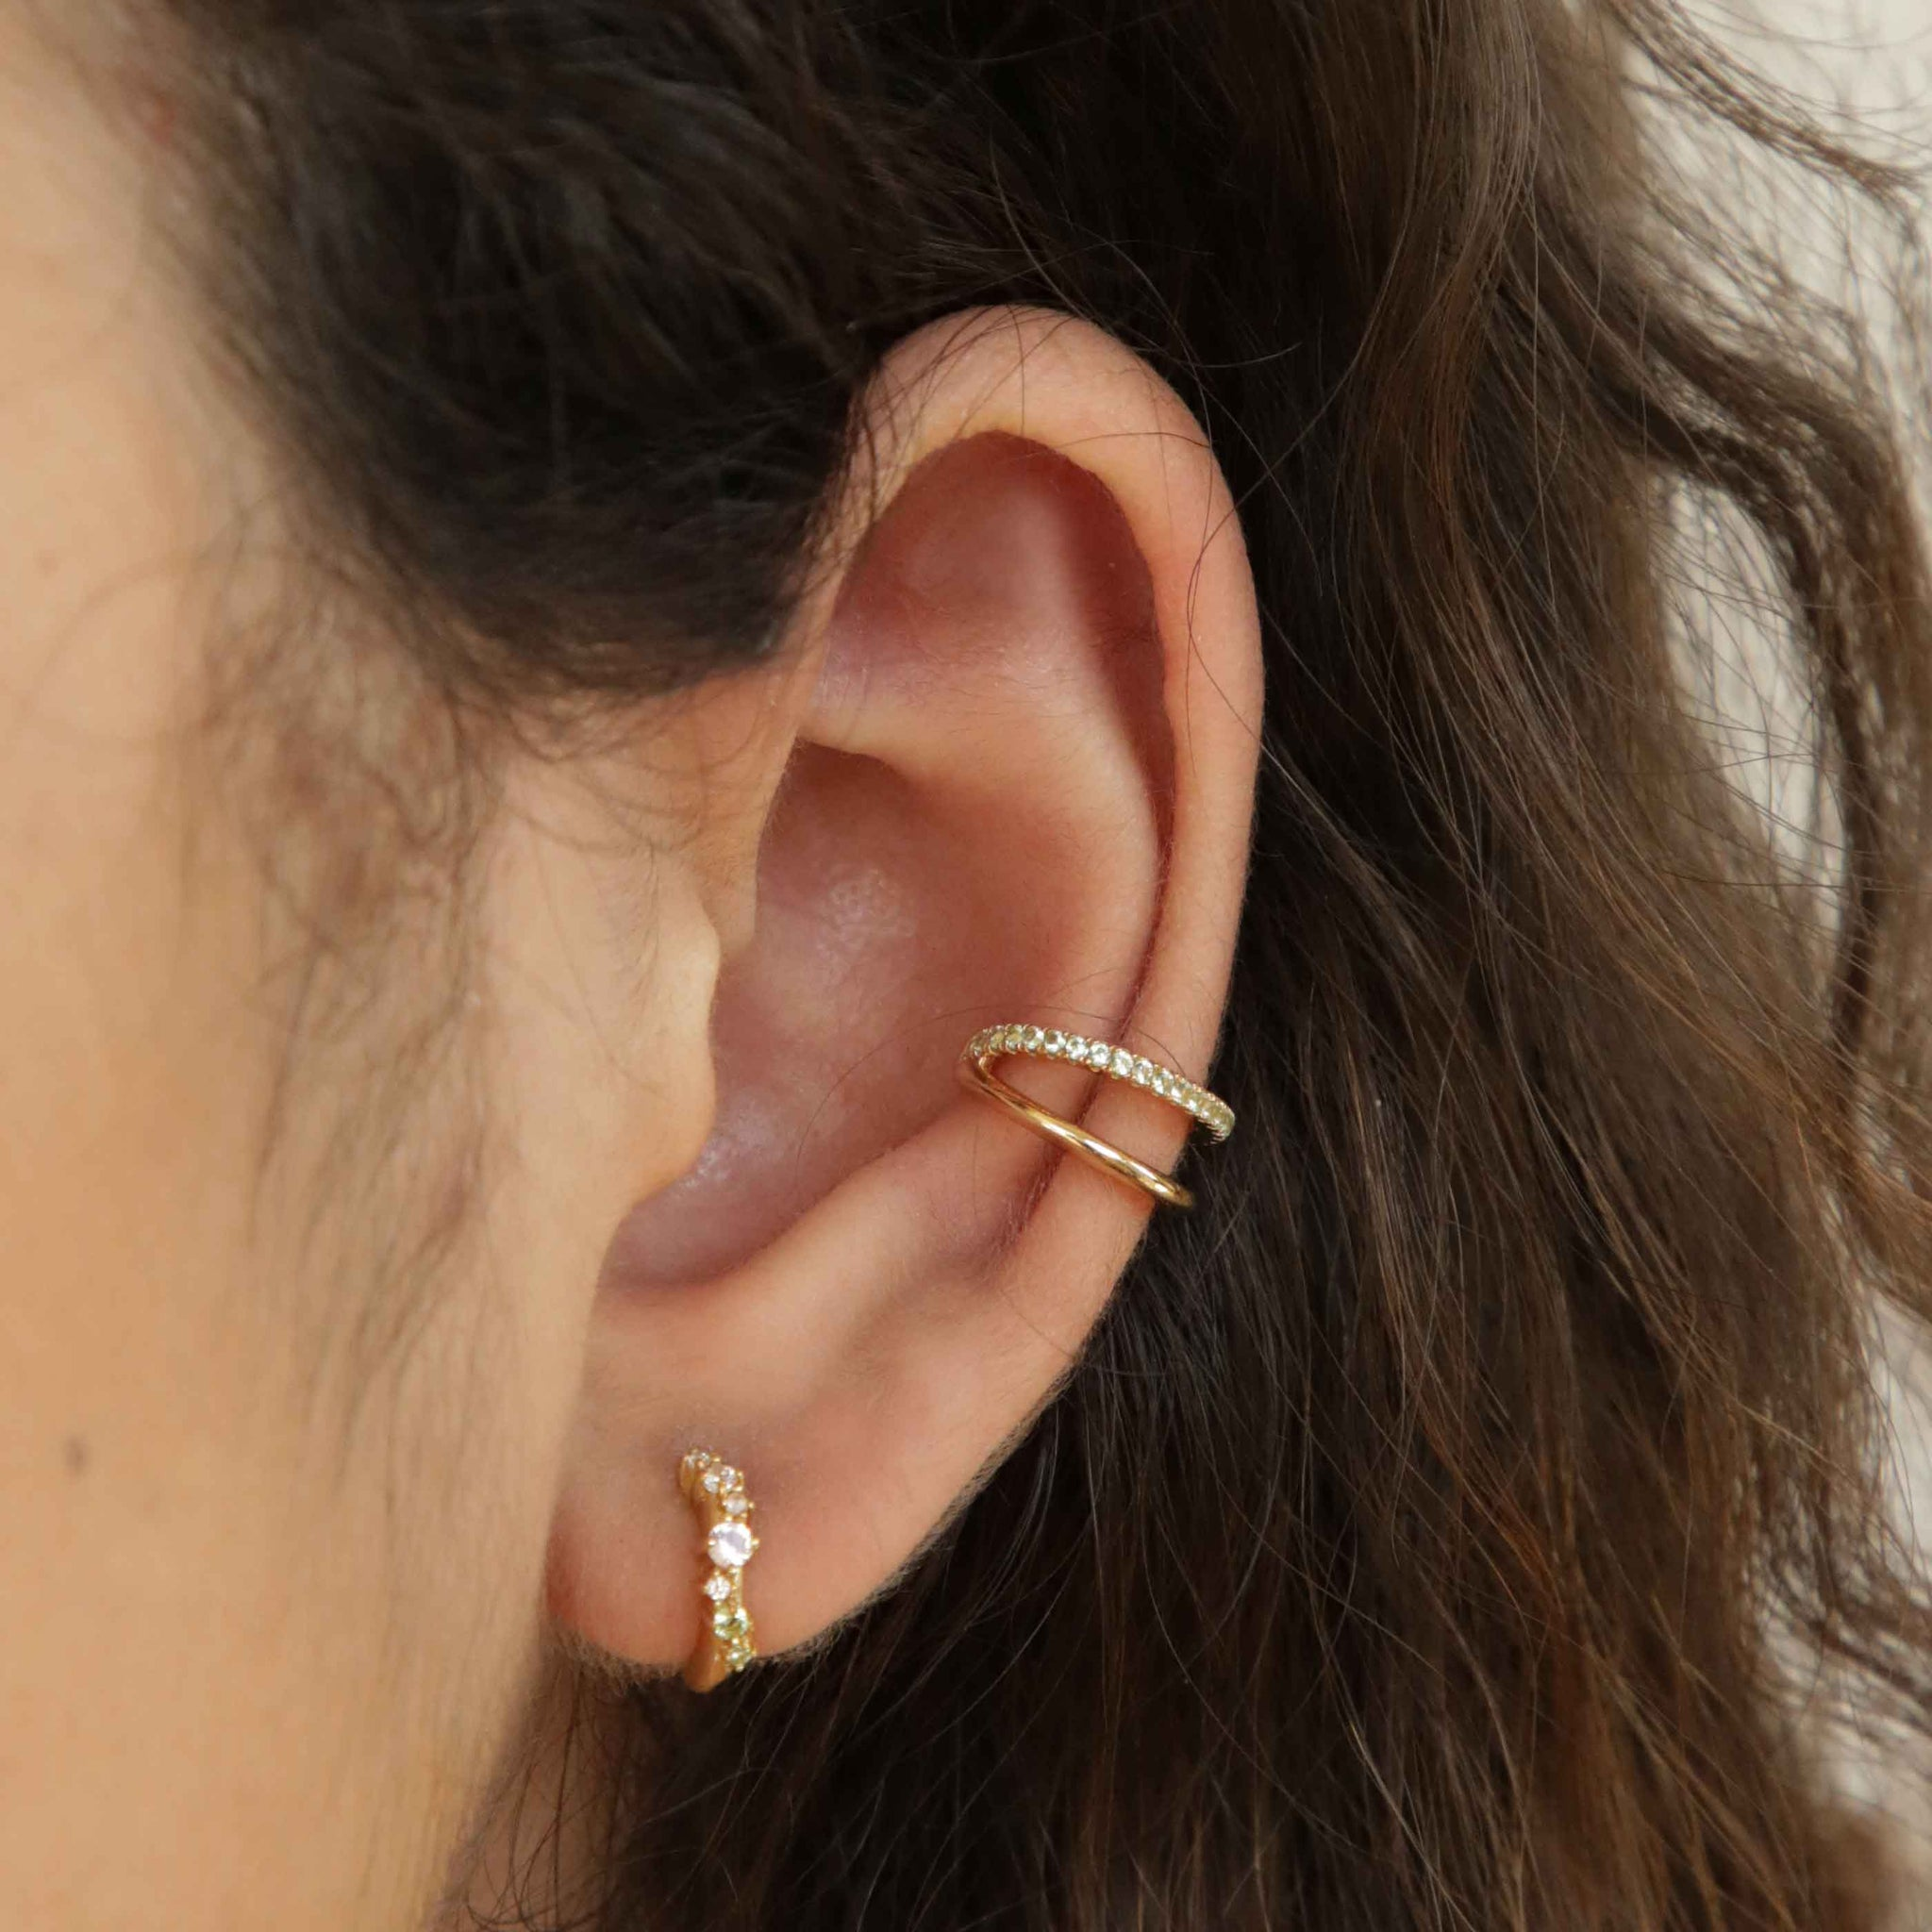 Illusion Sage Ear Cuff in Gold